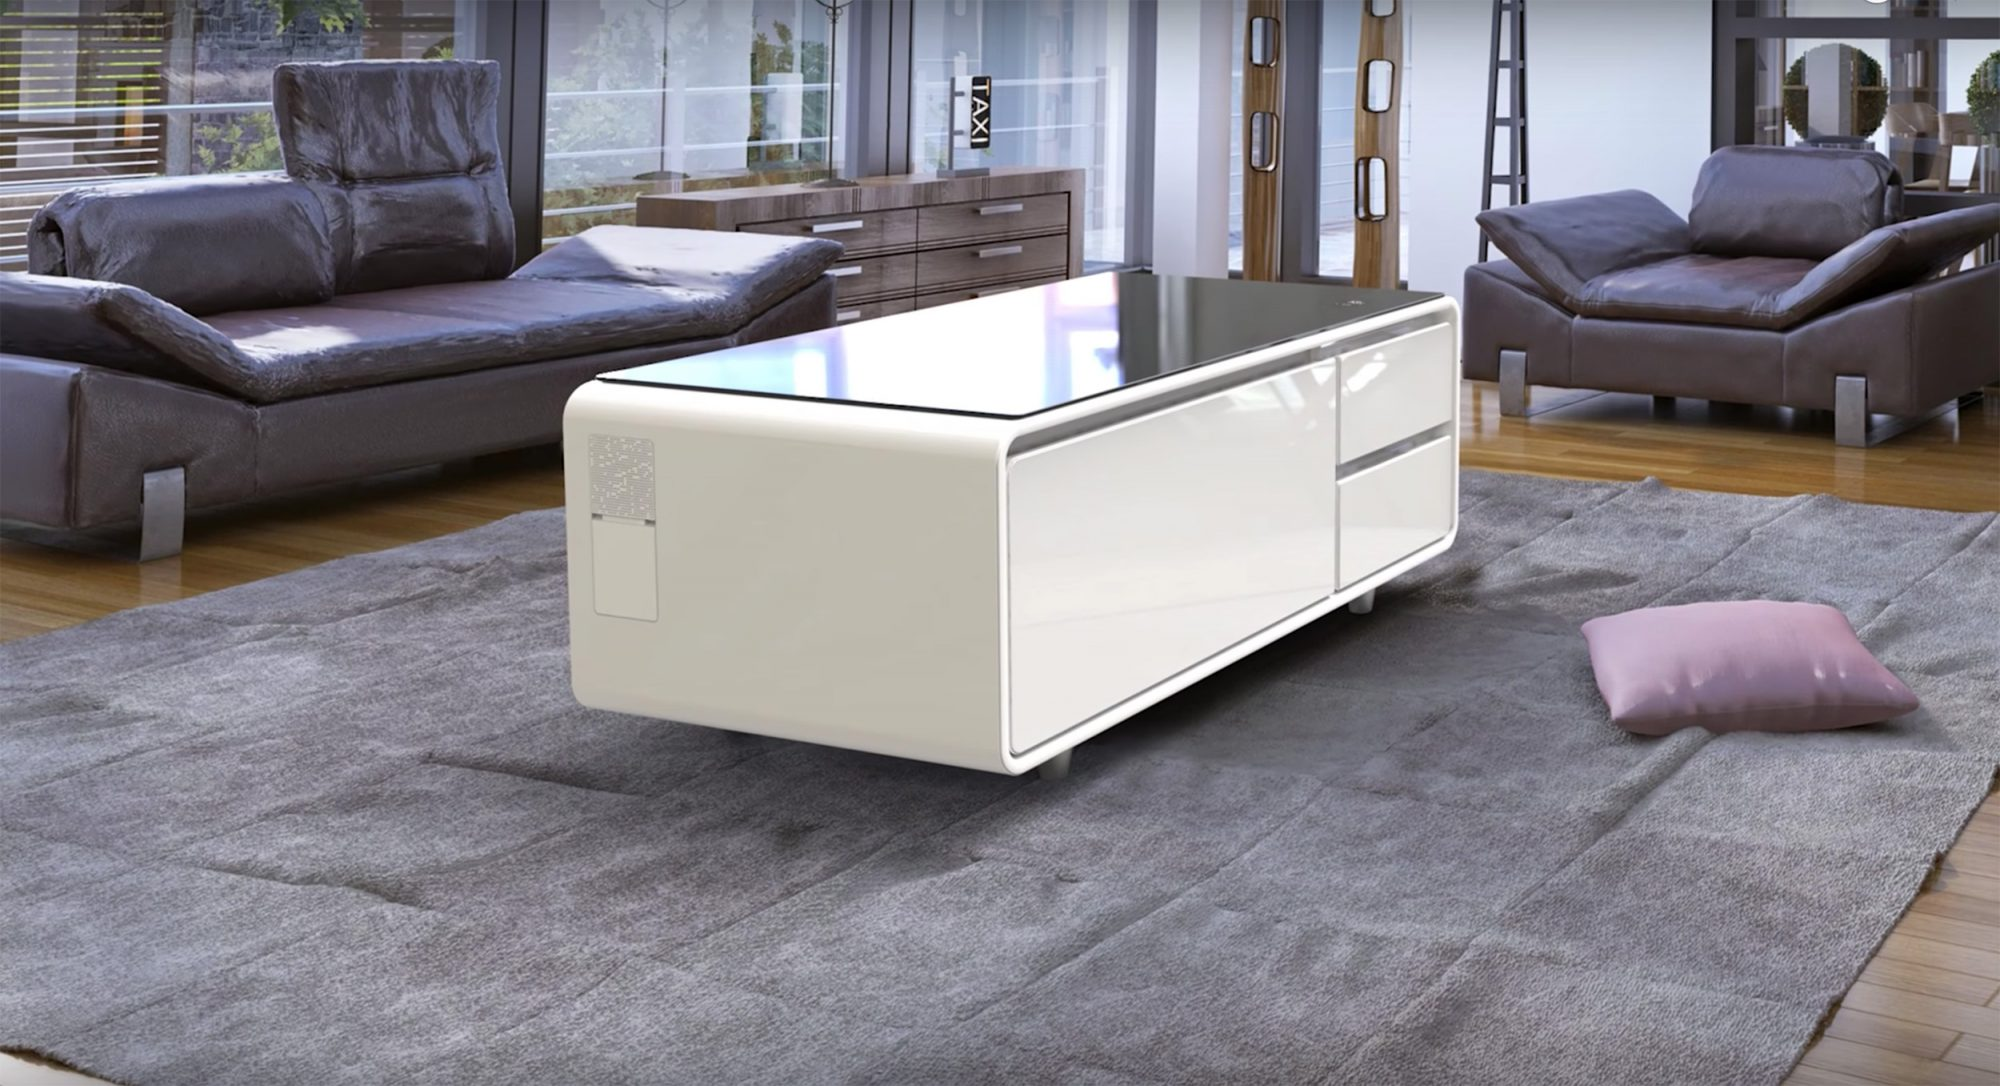 EC: Is This Crowd-Funded Coffee Table-Fridge Hybrid Actually a Scam?